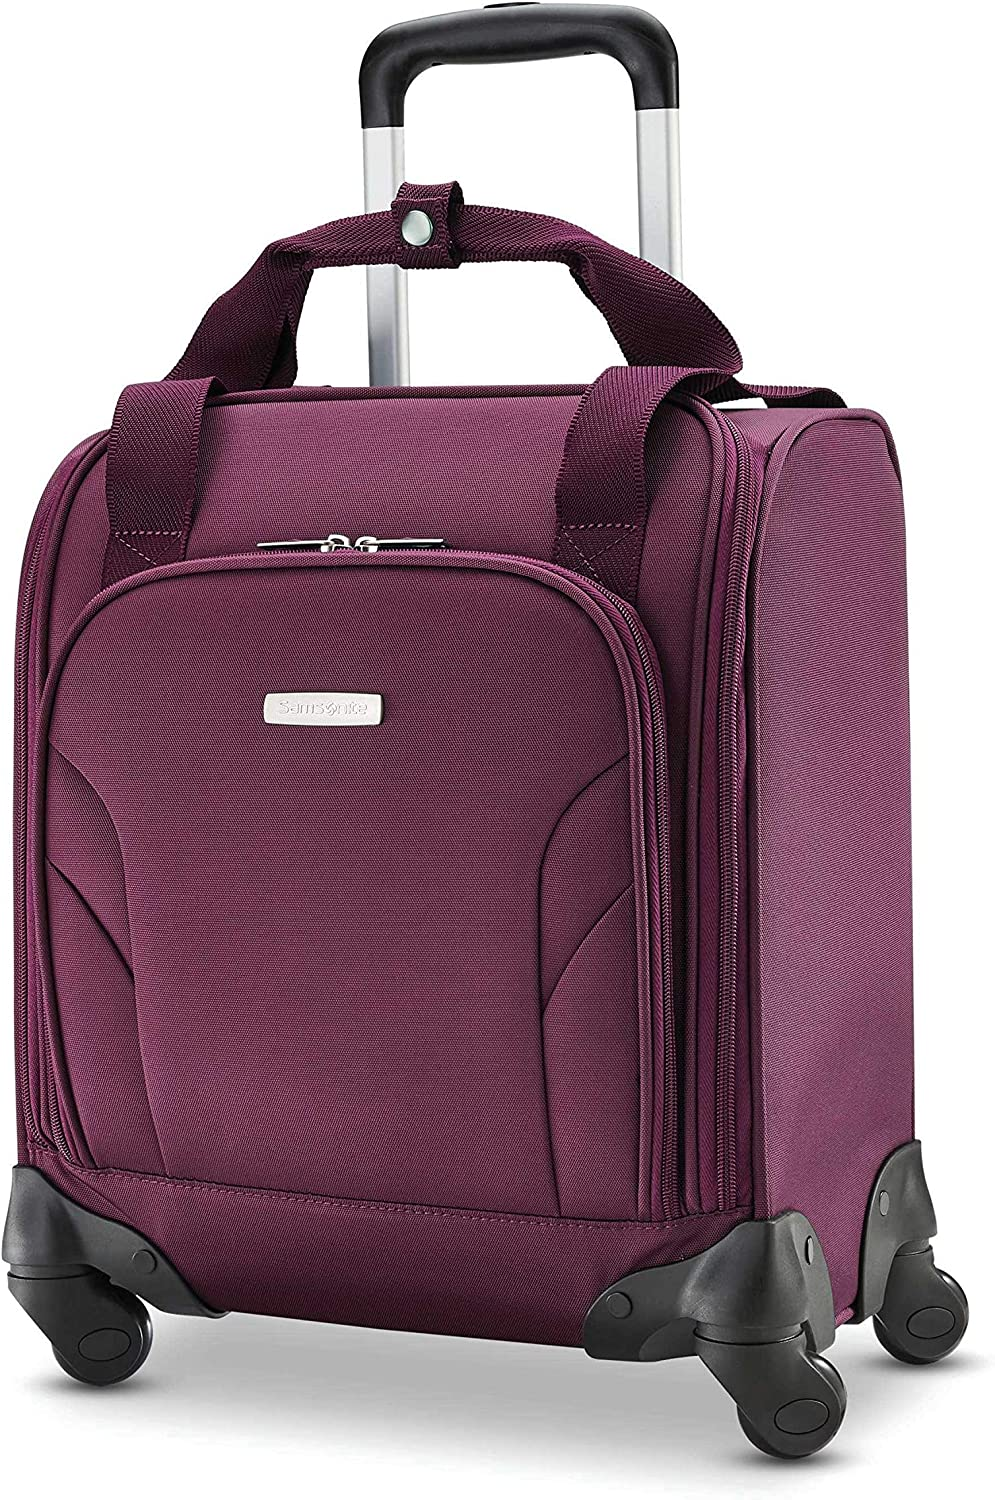 Samsonite Underseat Carry-On Spinner With USB Port, Purple, One Size